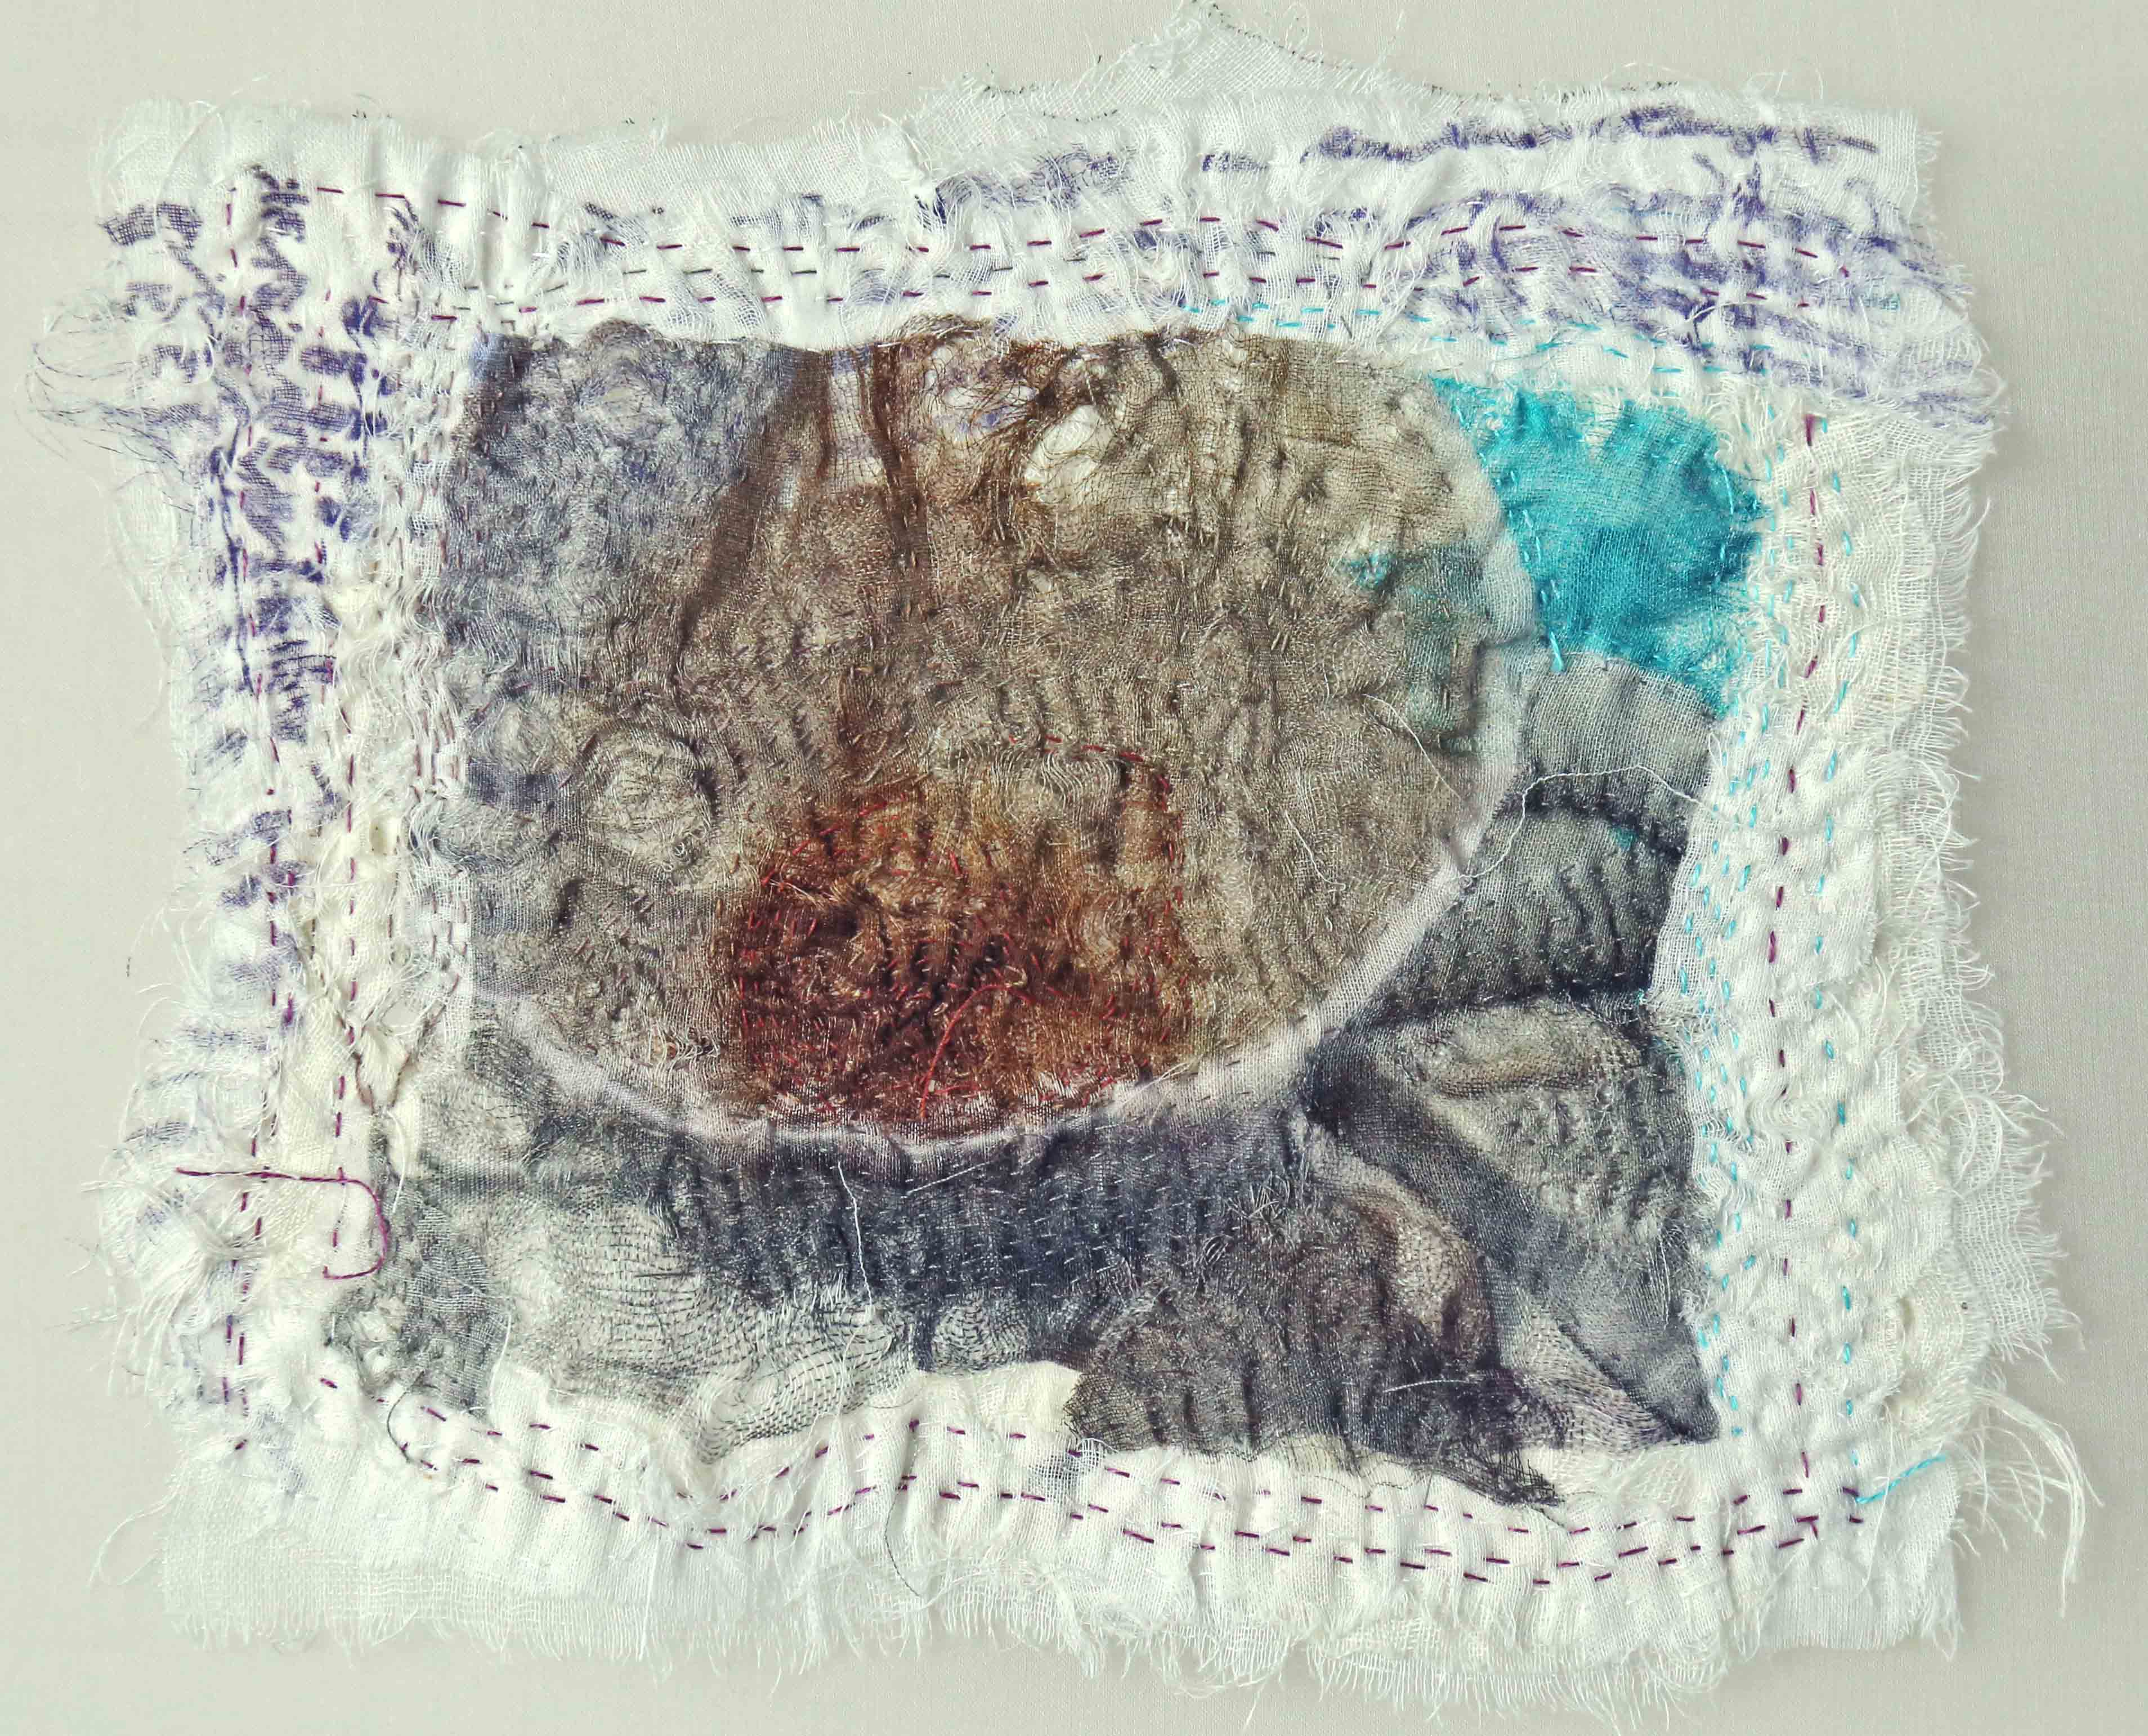 Dregs in Your Tea-cup I, 2010 [6.5 X 7.5 inches - unframed] Materials: cotton voile, cotton floss, cotton-polyester thread, Technique: photography, digital printing, tearing, layering, stitching, embroidery